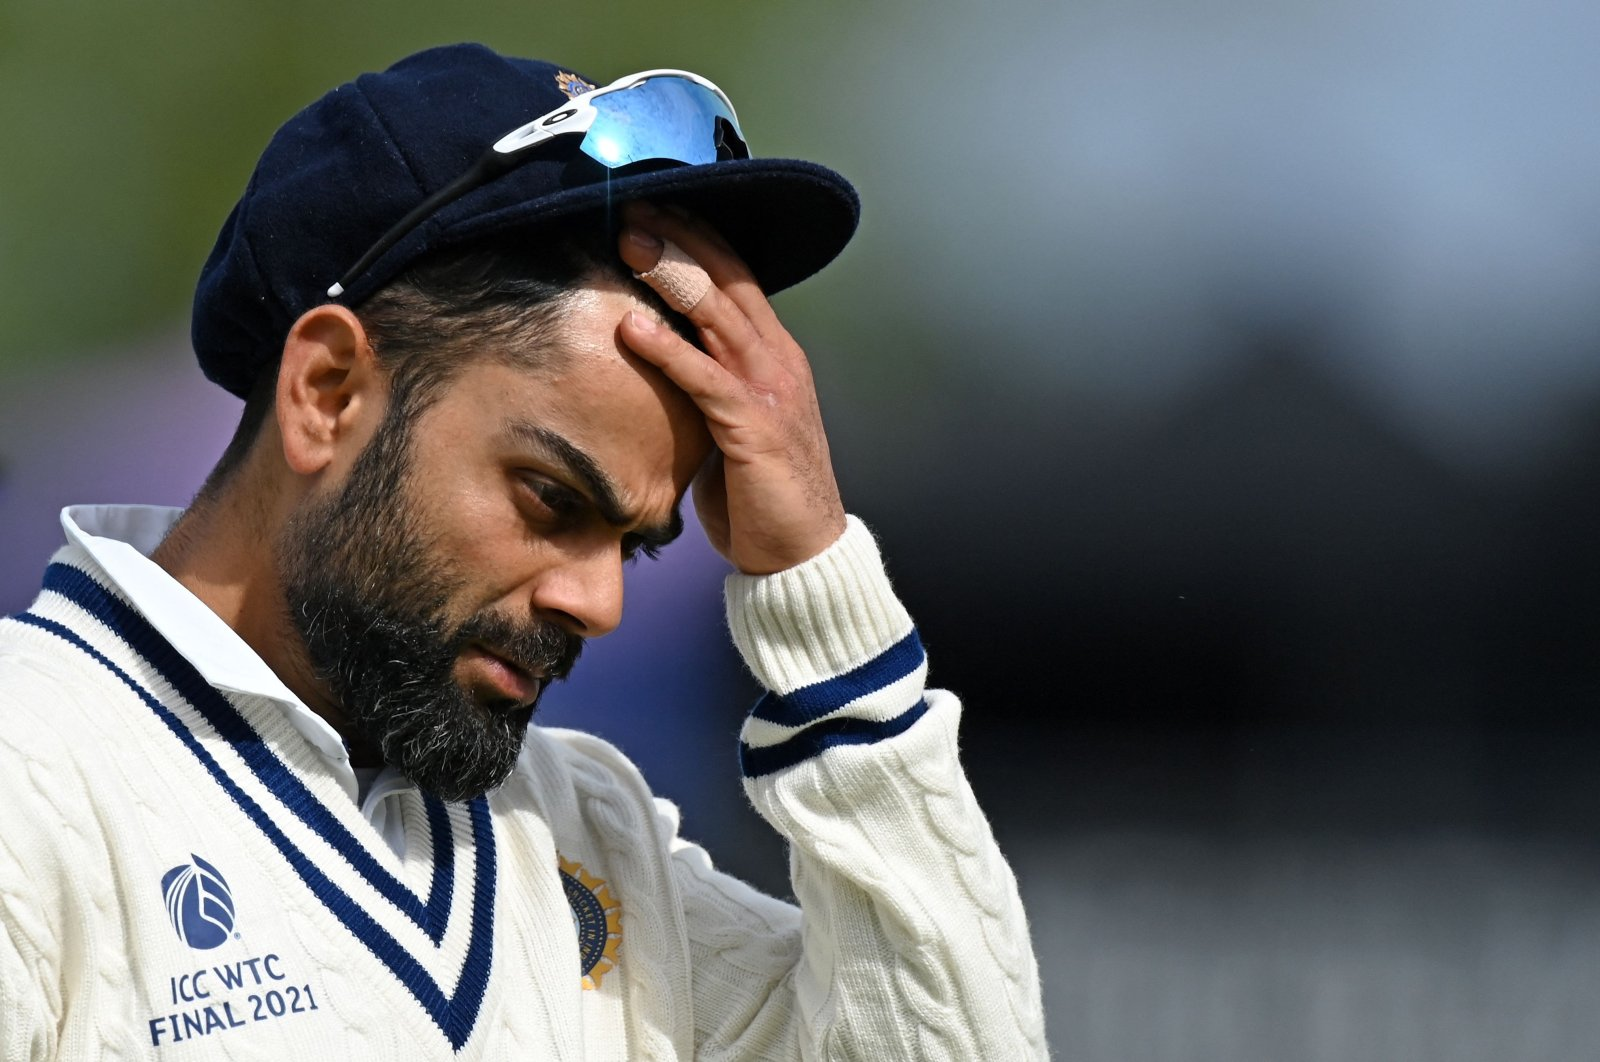 India's Virat Kohli reacts as he walks back to the pavilion on the fifth day of the ICC World Test Championship final against New Zealand in Southampton, England, June 22, 2021. (AFP Photo)